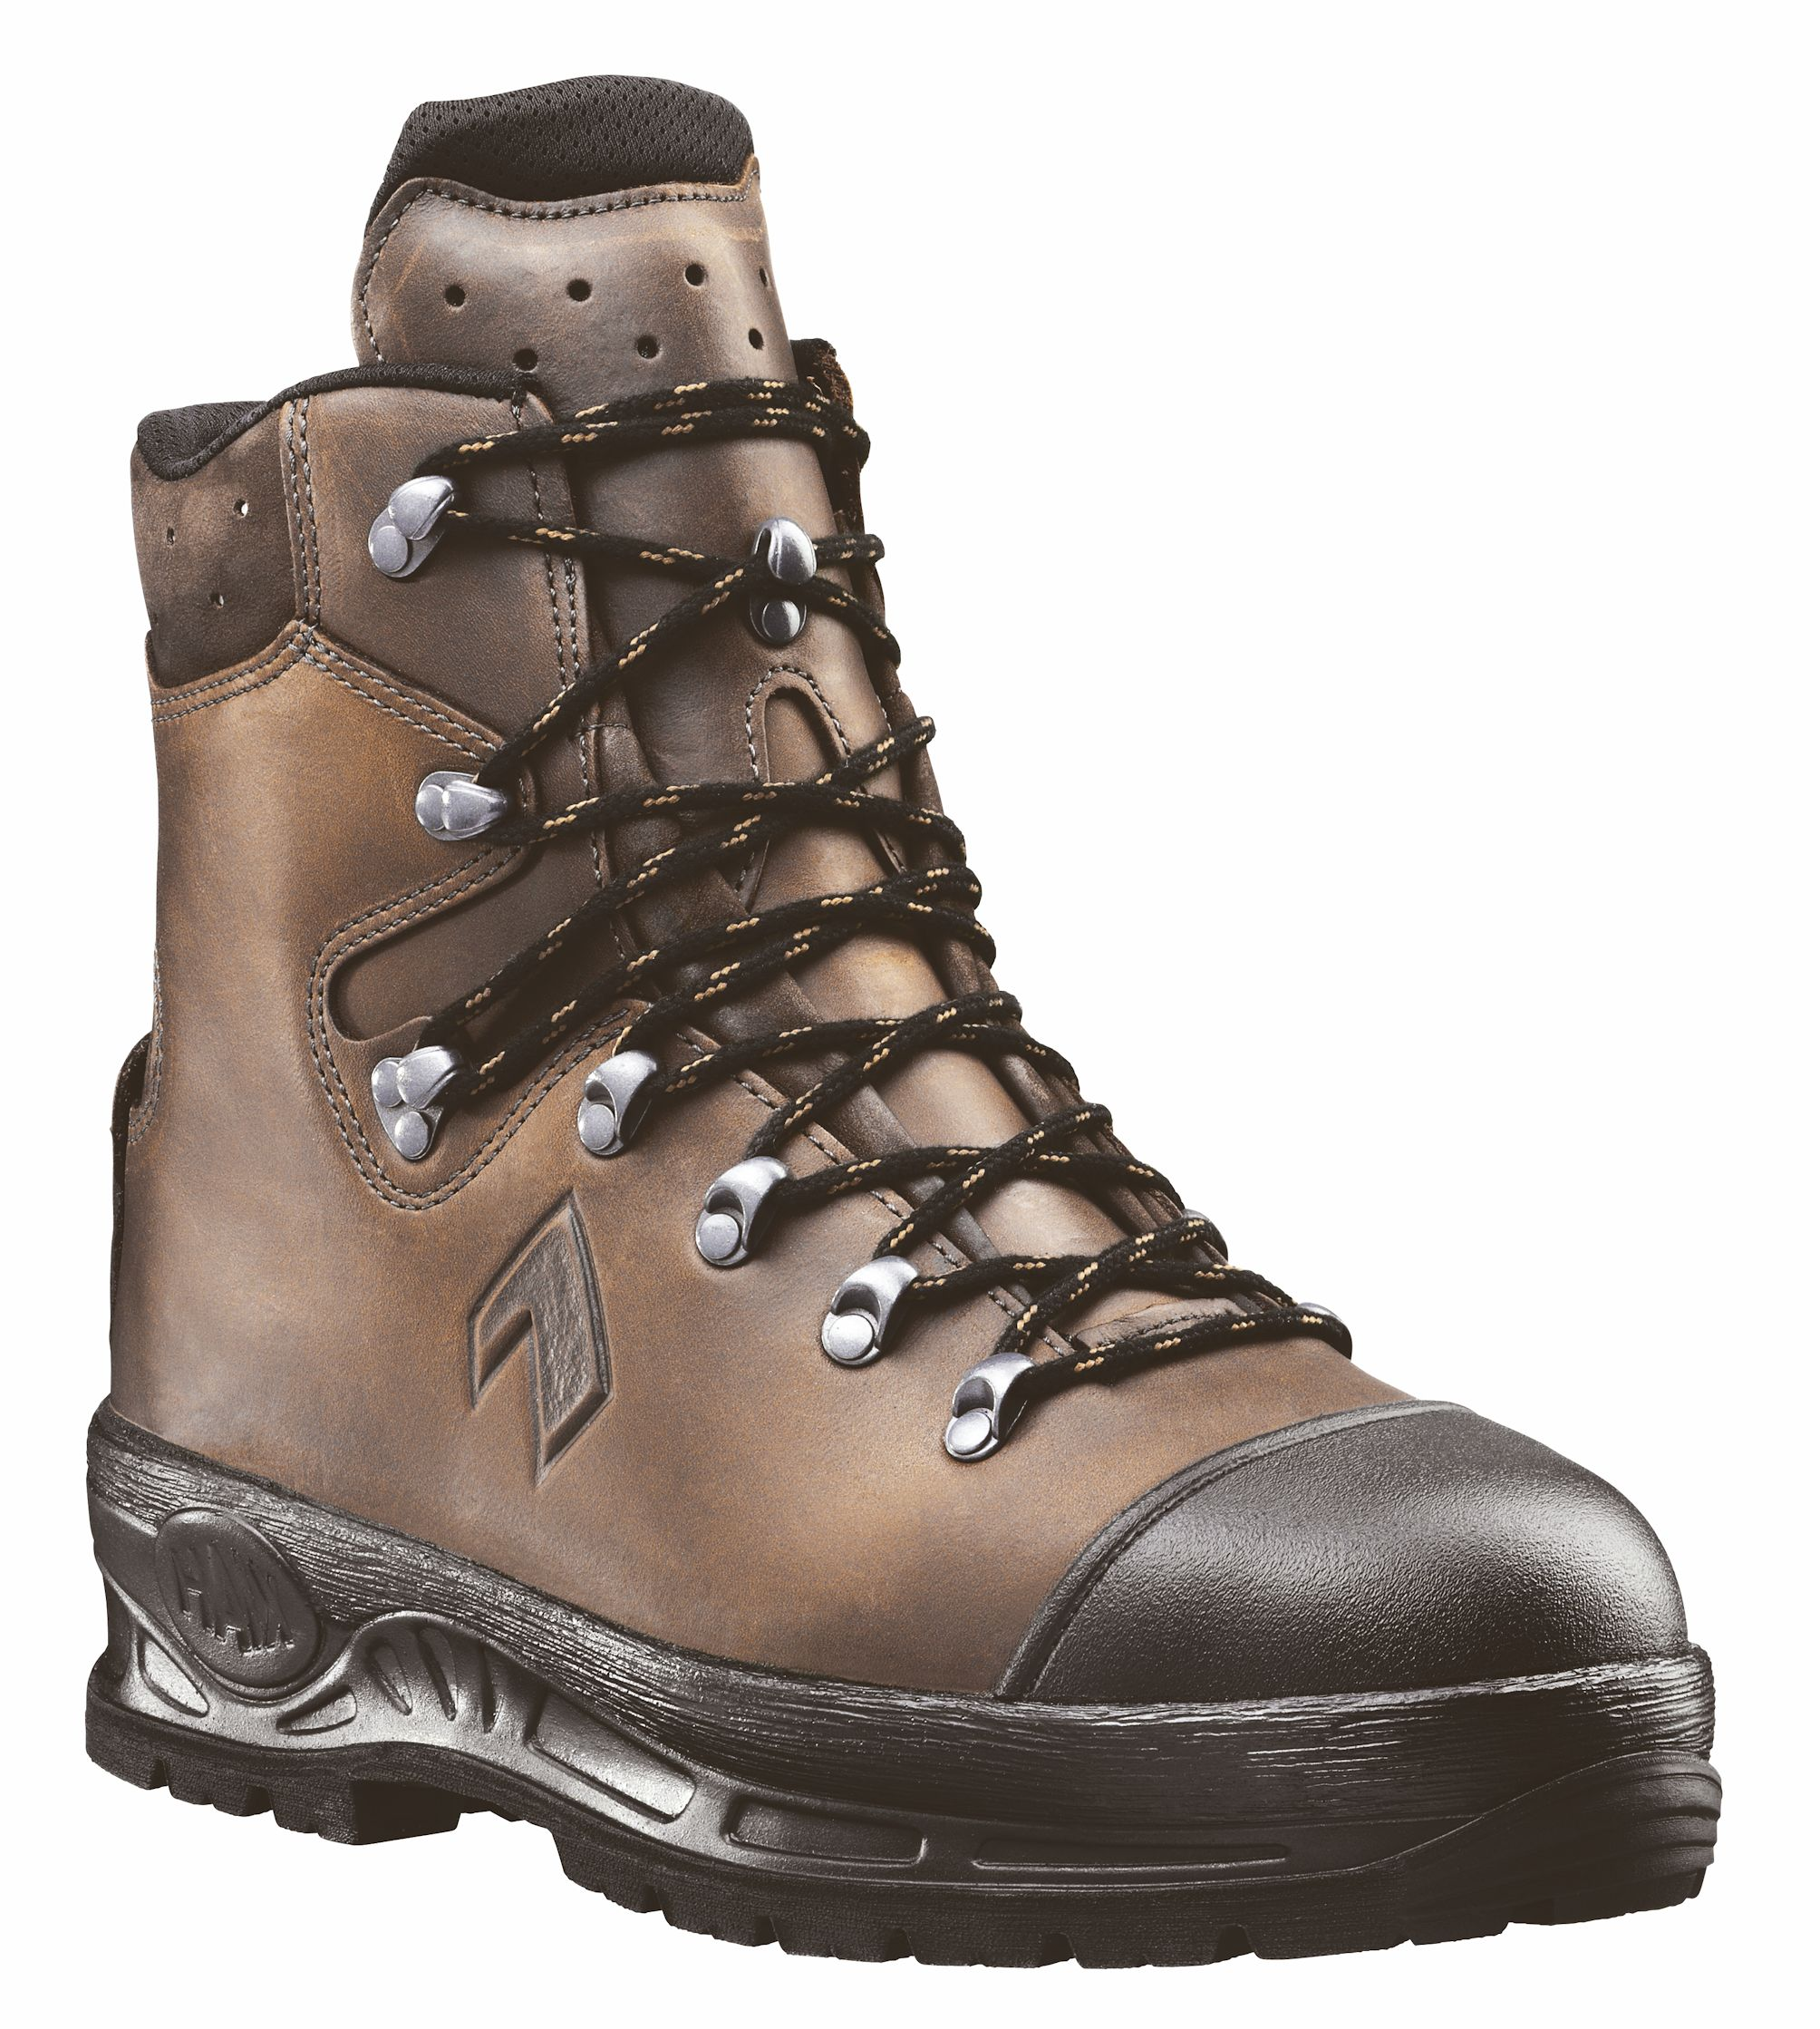 haix trekker mountain s3 gore tex waterproof new safety brown chainsaw boots ebay. Black Bedroom Furniture Sets. Home Design Ideas